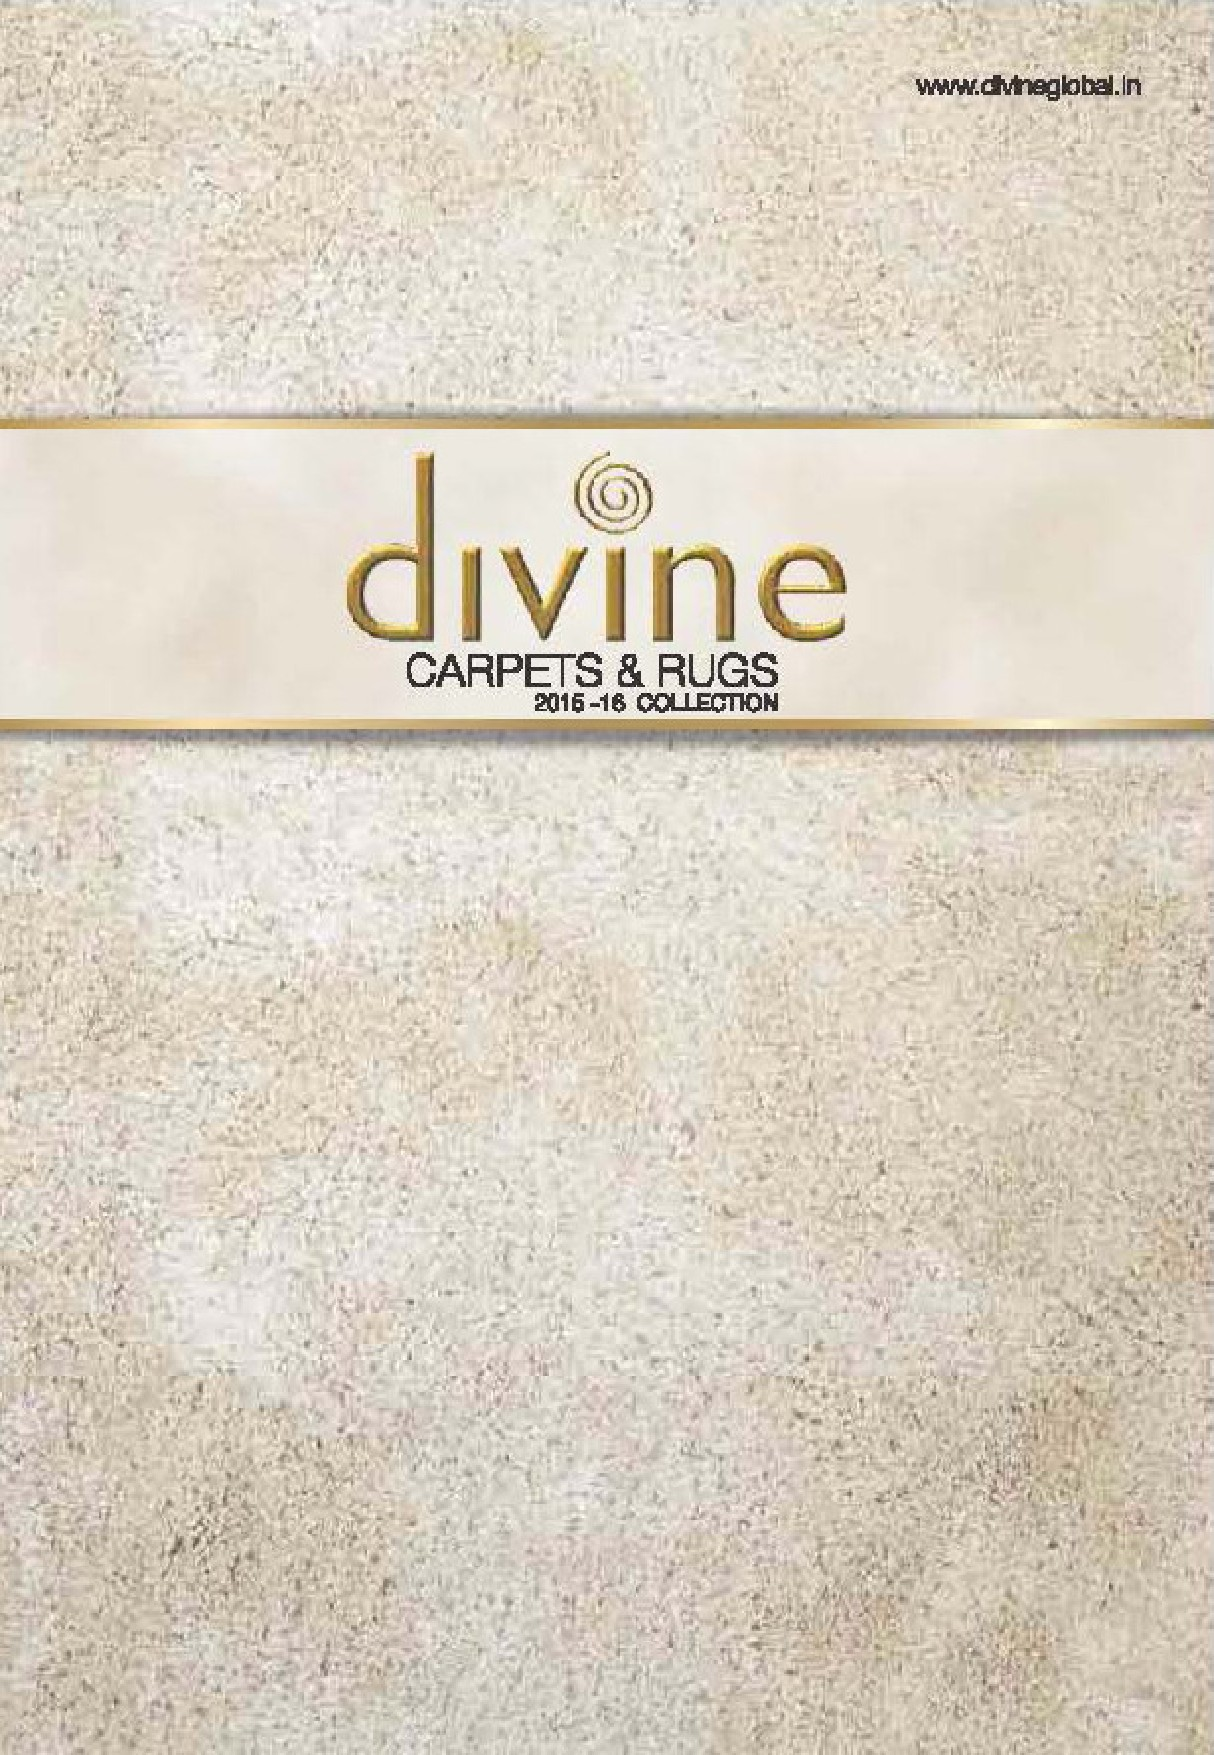 Divine Products Catalogue